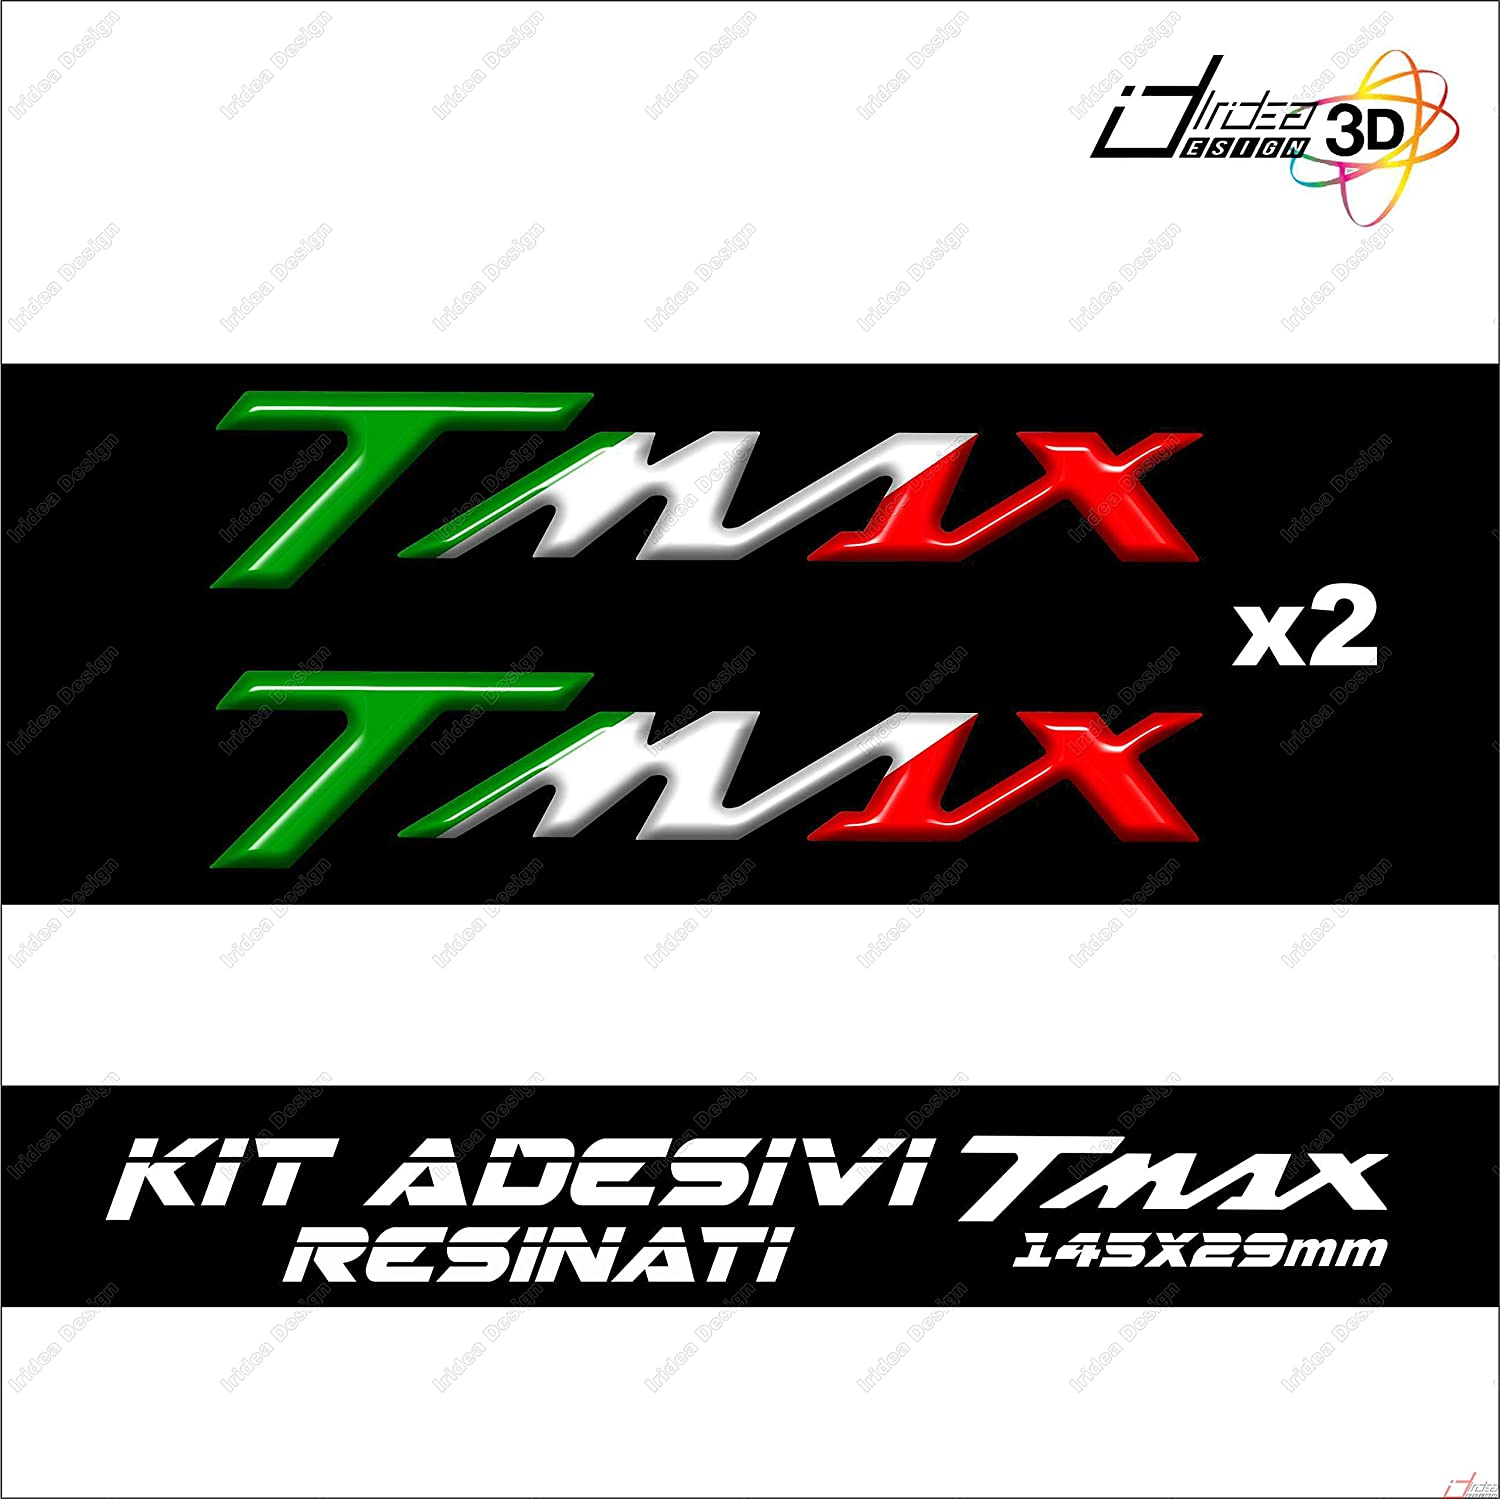 2 ADHESIFS MOTO IN RESINE 3D ECRITE TMAX COMPATIBLE YAMAHA T MAX 500 TRICOLORE